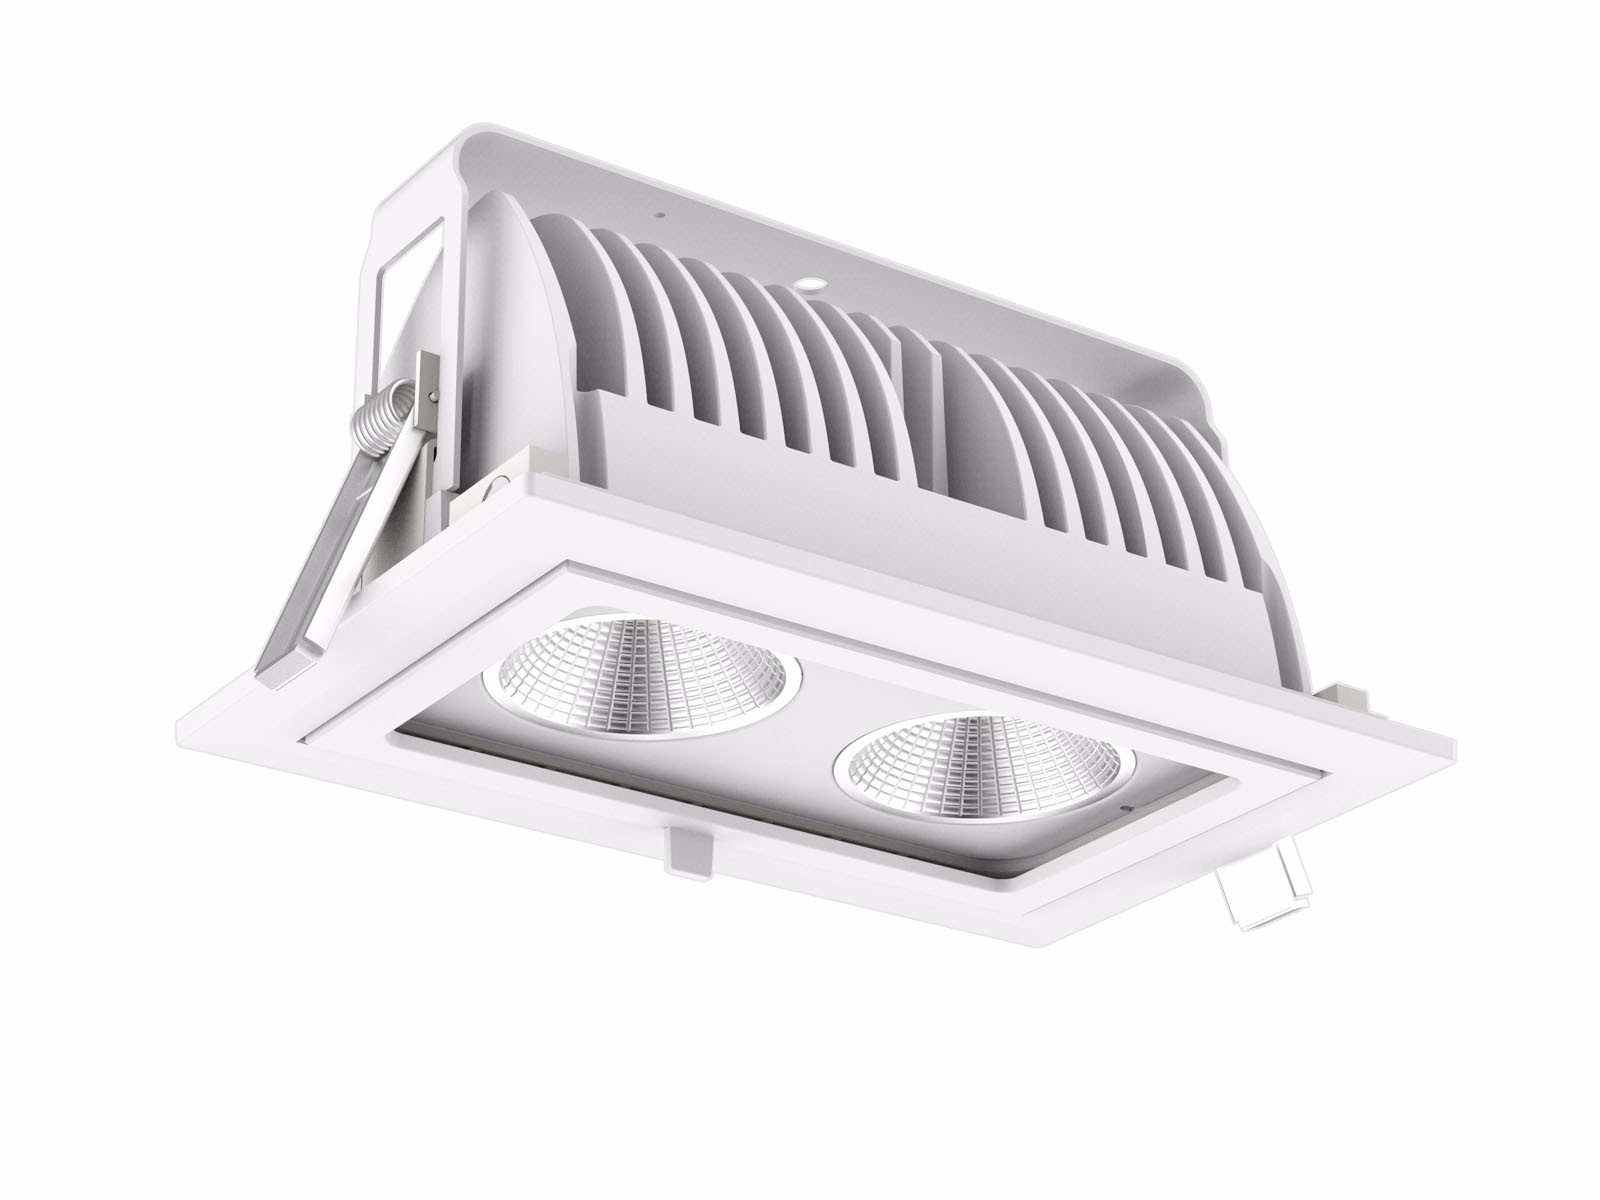 RD01-B LED Downlight